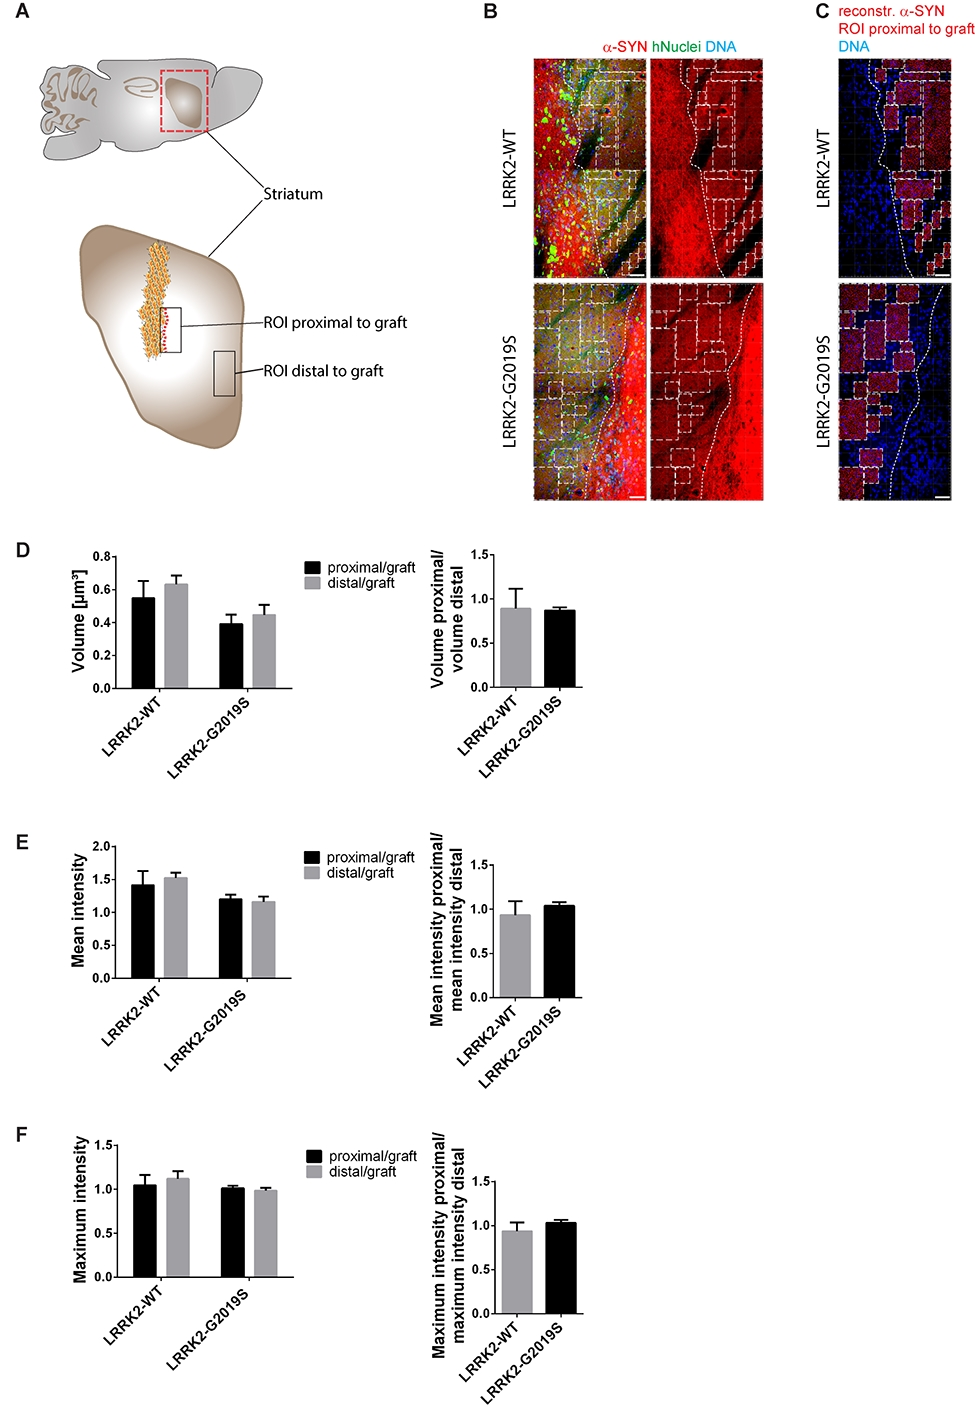 Figure 2. Alpha-Synuclein spreading from the graft was not detected in the surrounding tissue. A Schematic overview of the mouse adult brain indicating the ROIs that were chosen to analyse endogenous mouse alpha-Synuclein close (proximal) as well as far (distal) from the graft. B Representative images of the ROIs that were chosen proximal to the graft. Dashed lines define the edges of the graft. Squares mark the ROIs proximal to the graft that were used to create 3D surfaces shown in C. C 3D surface reconstruction of endogenous mouse alpha-Synuclein of the ROIs shown in B. D-F Quantification of the volume, the mean intensity and the maximum intensity of the reconstructed endogenous mouse alpha-Synuclein surfaces proximal to the graft and distal to the graft. Left: Proximal and distal ROIs of endogenous mouse alpha-Synuclein were normalized to the ROIs of the graft and eventually the different distances were compared to each other within the same cell line. Right: The ratio of the different regions of endogenous mouse alpha-Synuclein were compared between the different cell lines. Scale bars: 50 µm (B and C). Error bars represent mean + SEM (LRRK2-WT n=3, LRRK2-G2019S n=6); α-SYN: alpha-Synuclein, max: maximum, ROI: region of interest.